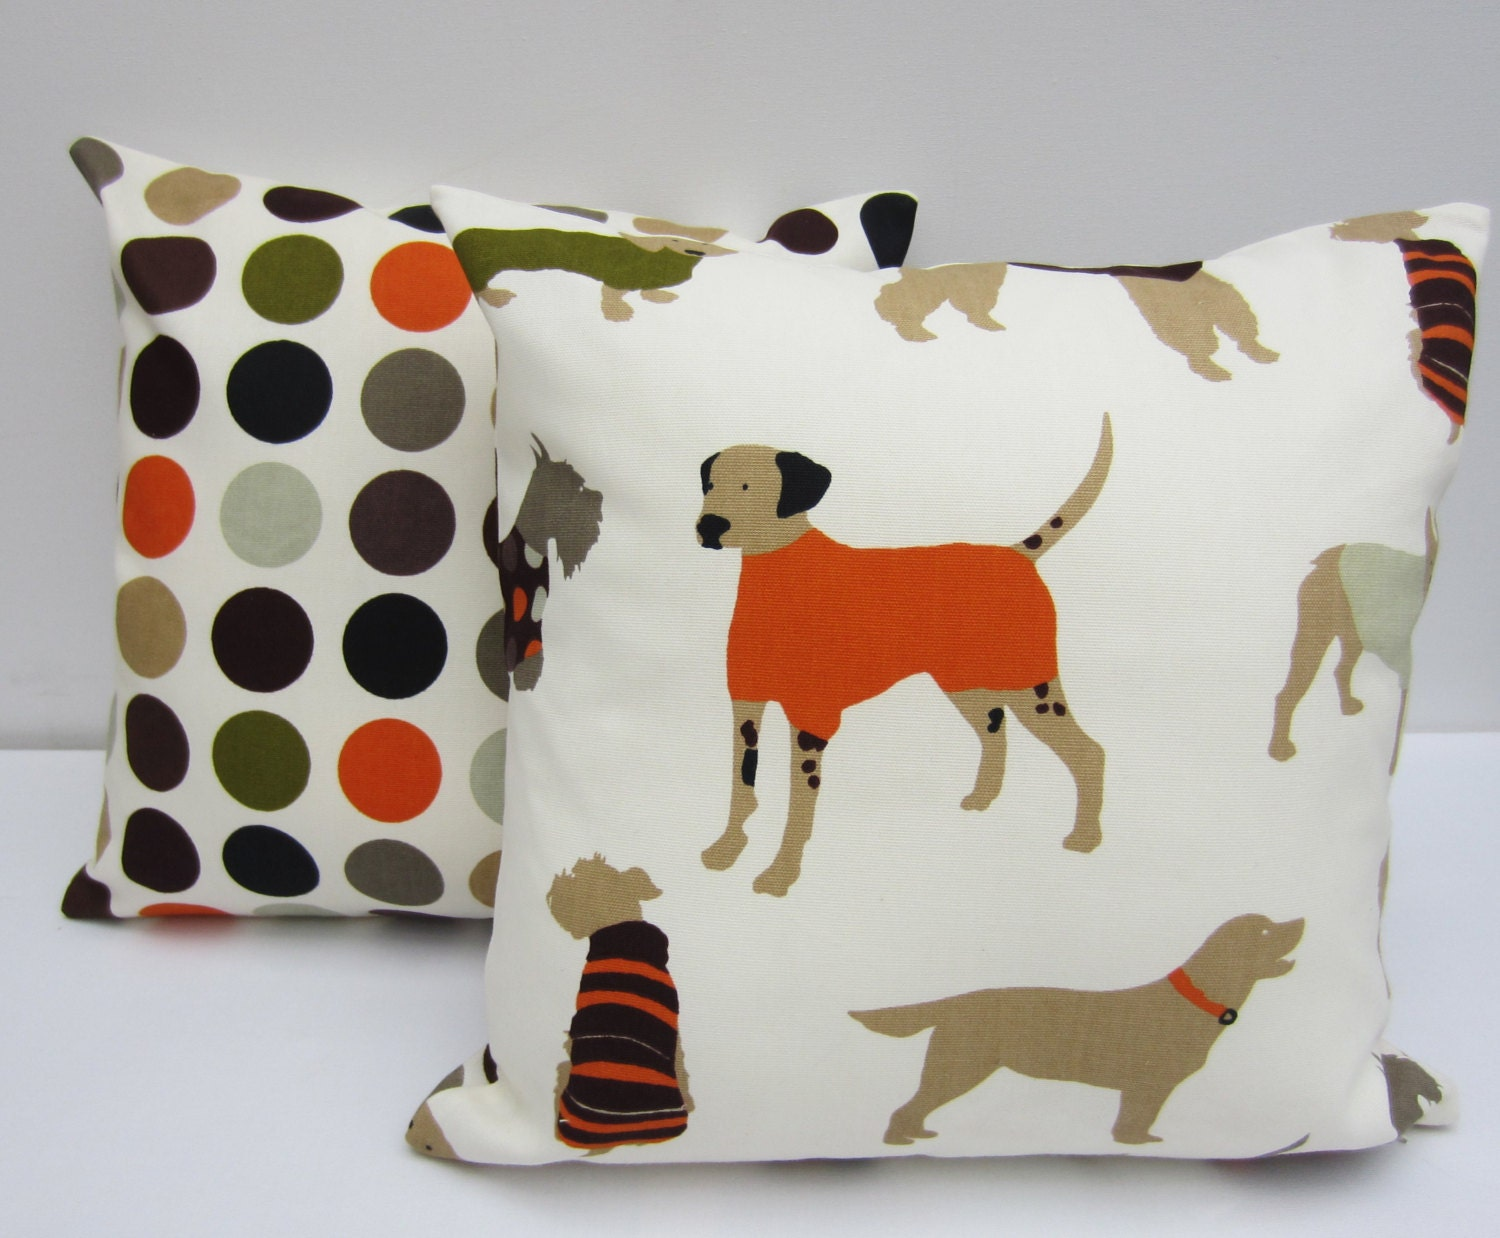 Decorative Pillows Dog : Set of Dog Themed Decorative Pillow Covers 16 x 16 Inch